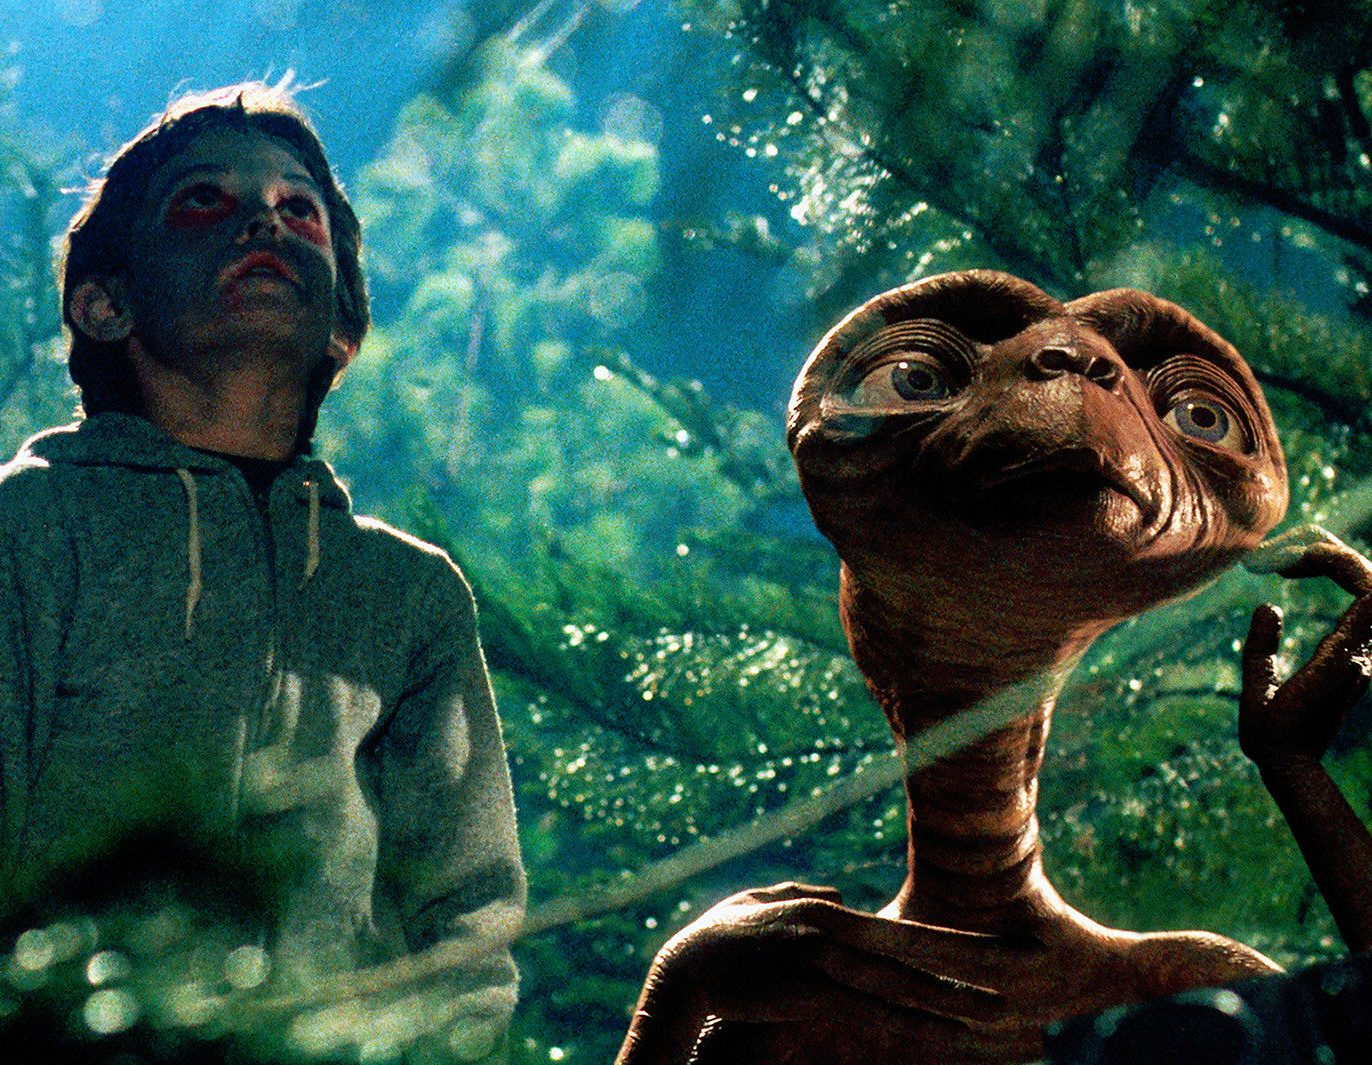 ettheextraterrestrial 1982 photo 17 1920x1080 1 e1608647628461 20 Things You Never Knew About E.T. The Extra-Terrestrial